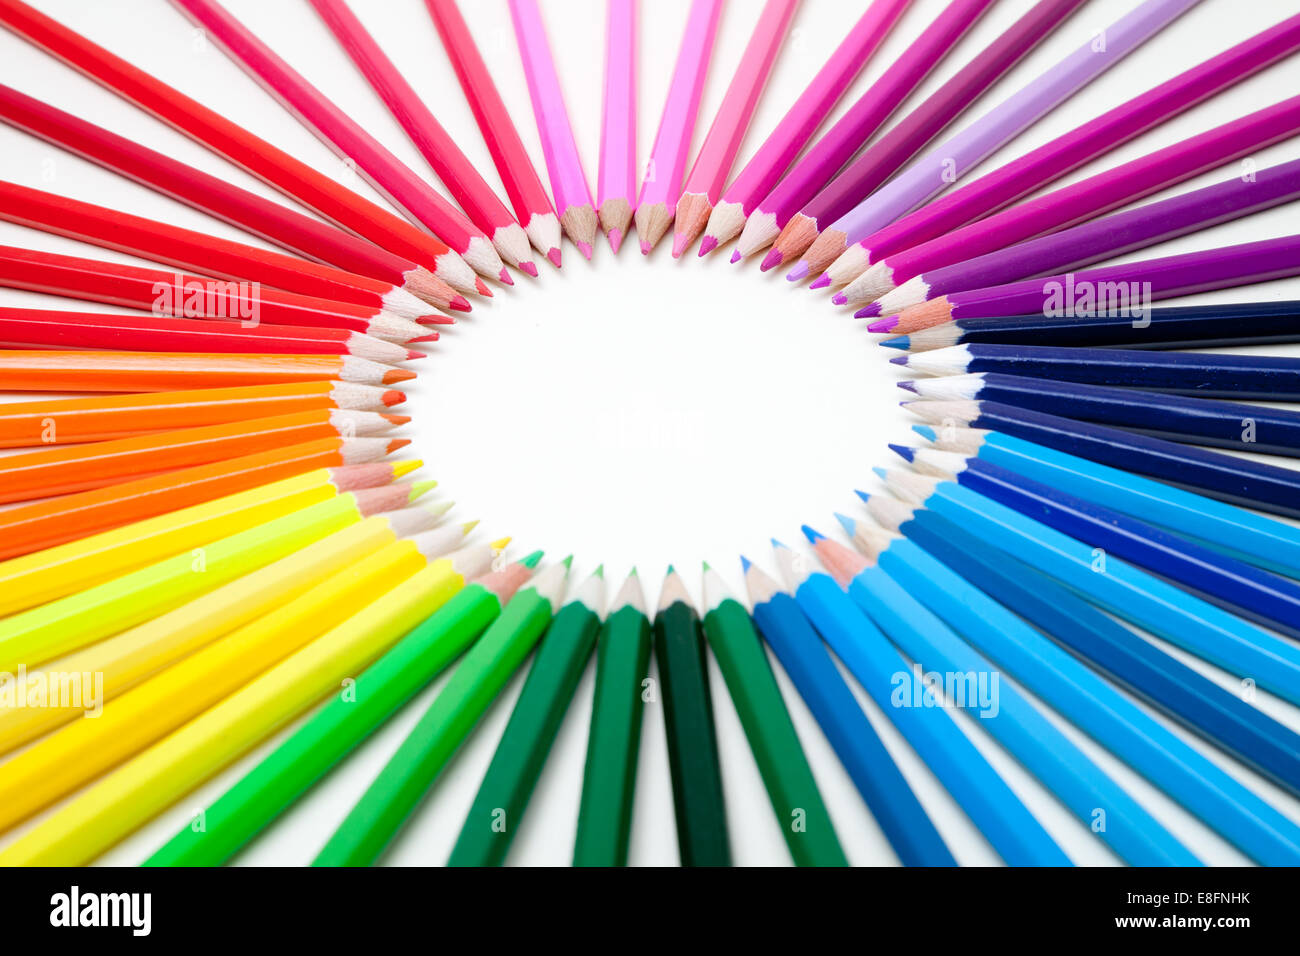 Multi-colored Pencils arranged to form a circle - Stock Image